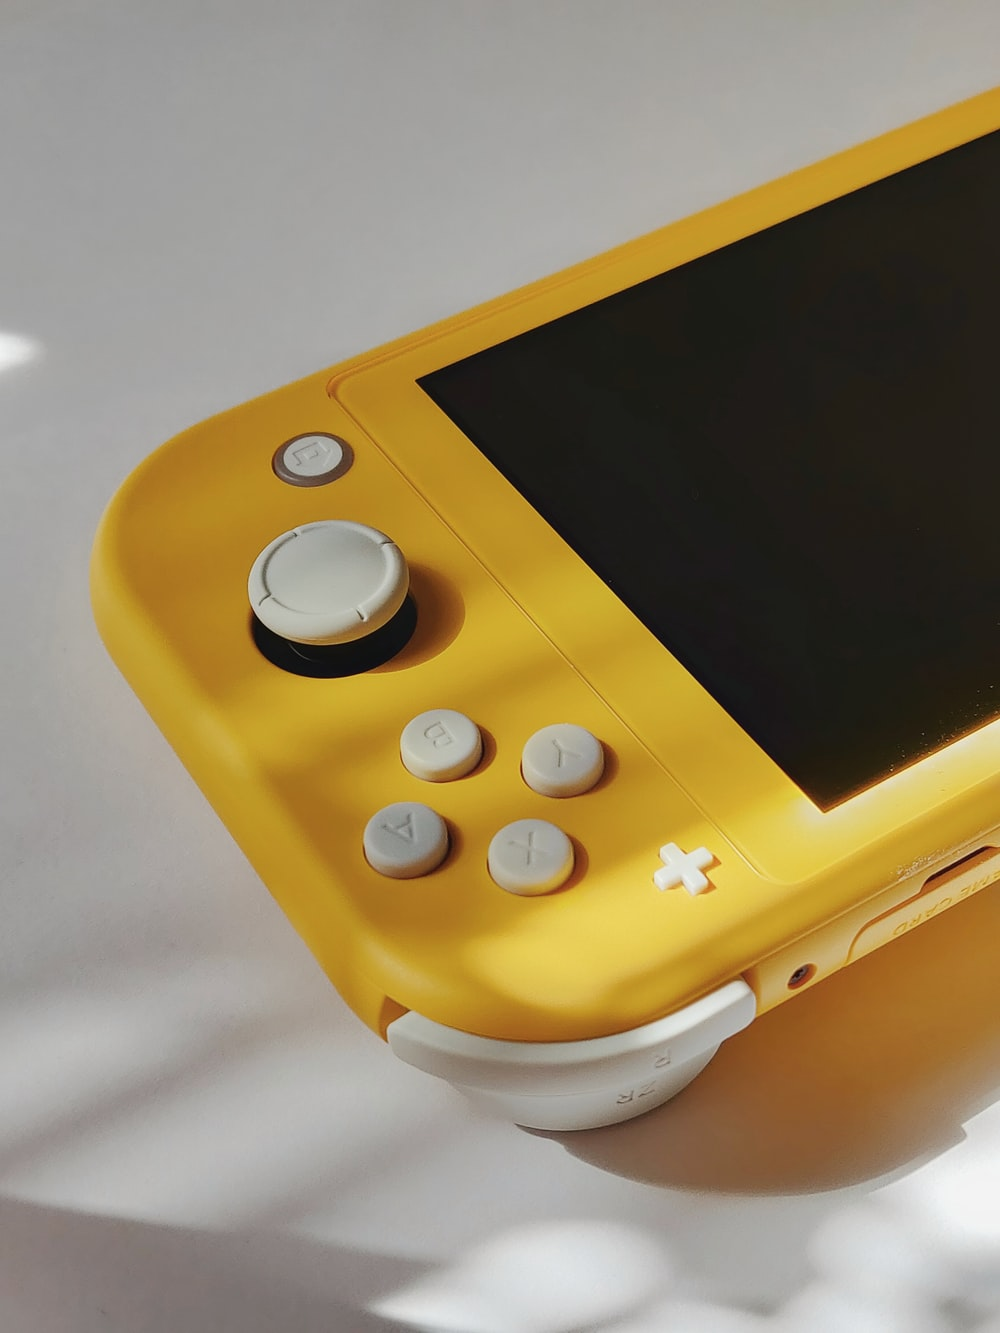 yellow and white game console